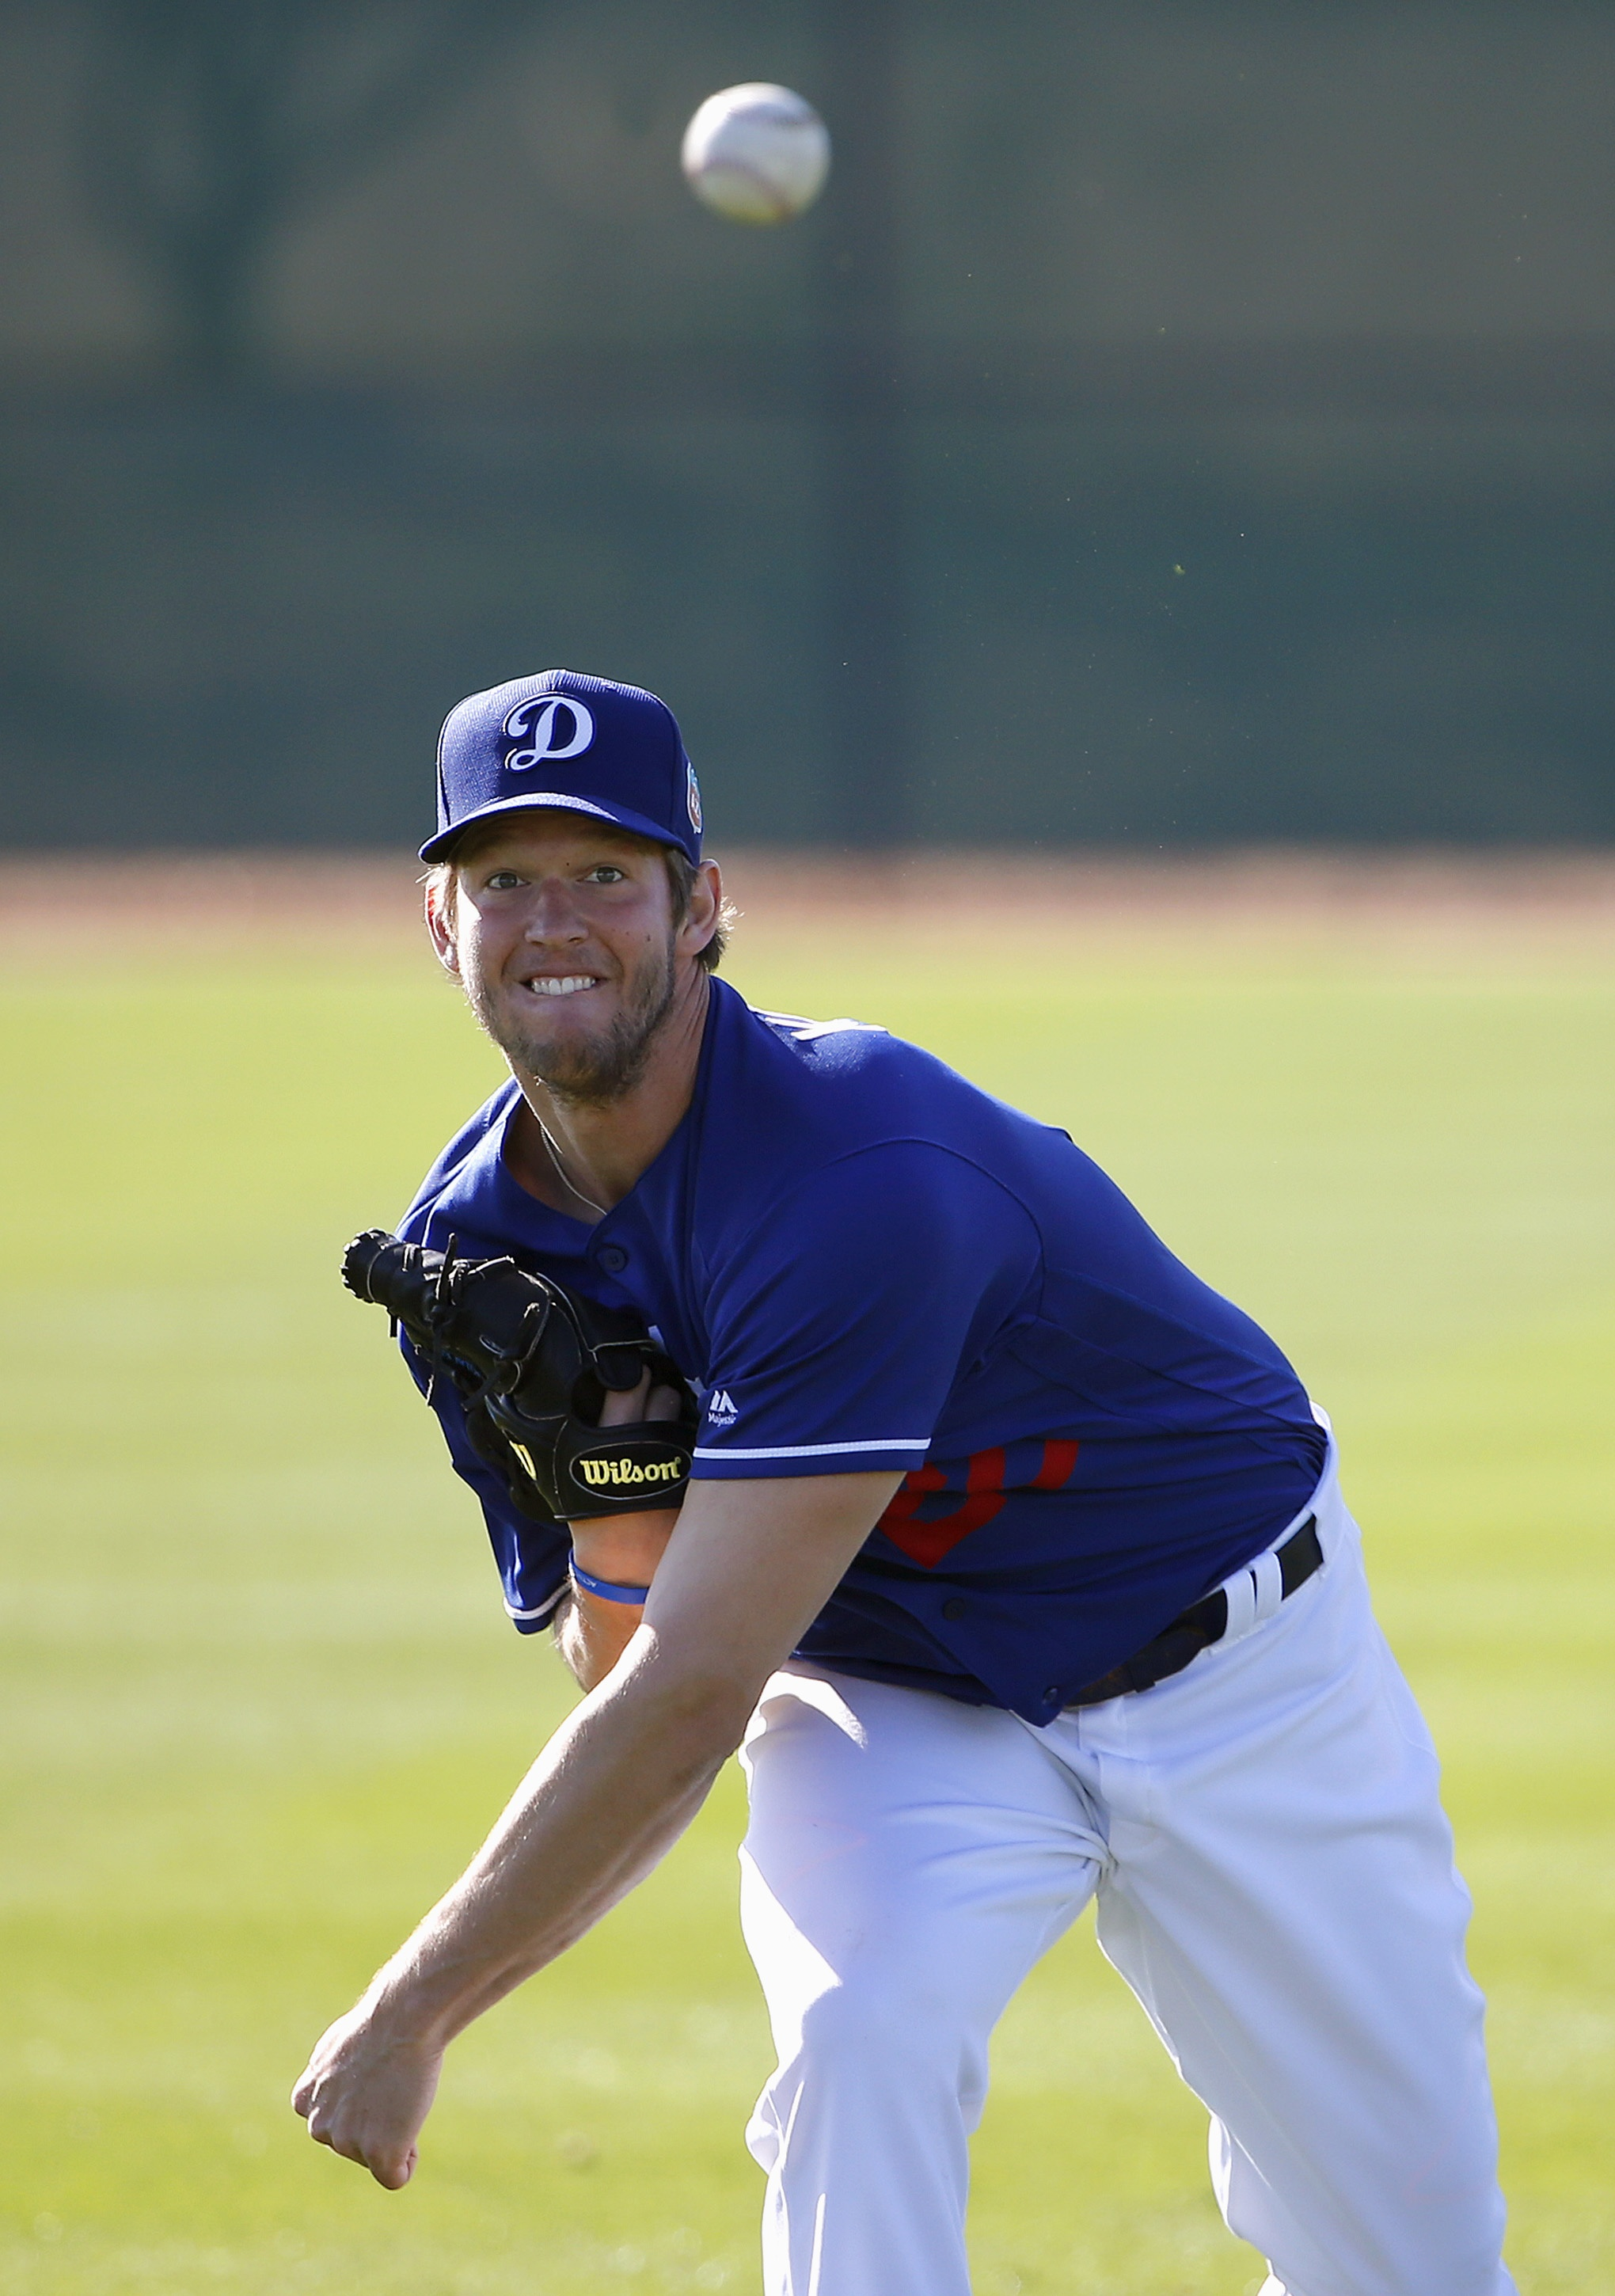 Los Angeles Dodgers' Clayton Kershaw warms up during a spring training baseball workout Monday, Feb. 22, 2016, in Glendale, Ariz. (AP Photo/Ross D. Franklin)